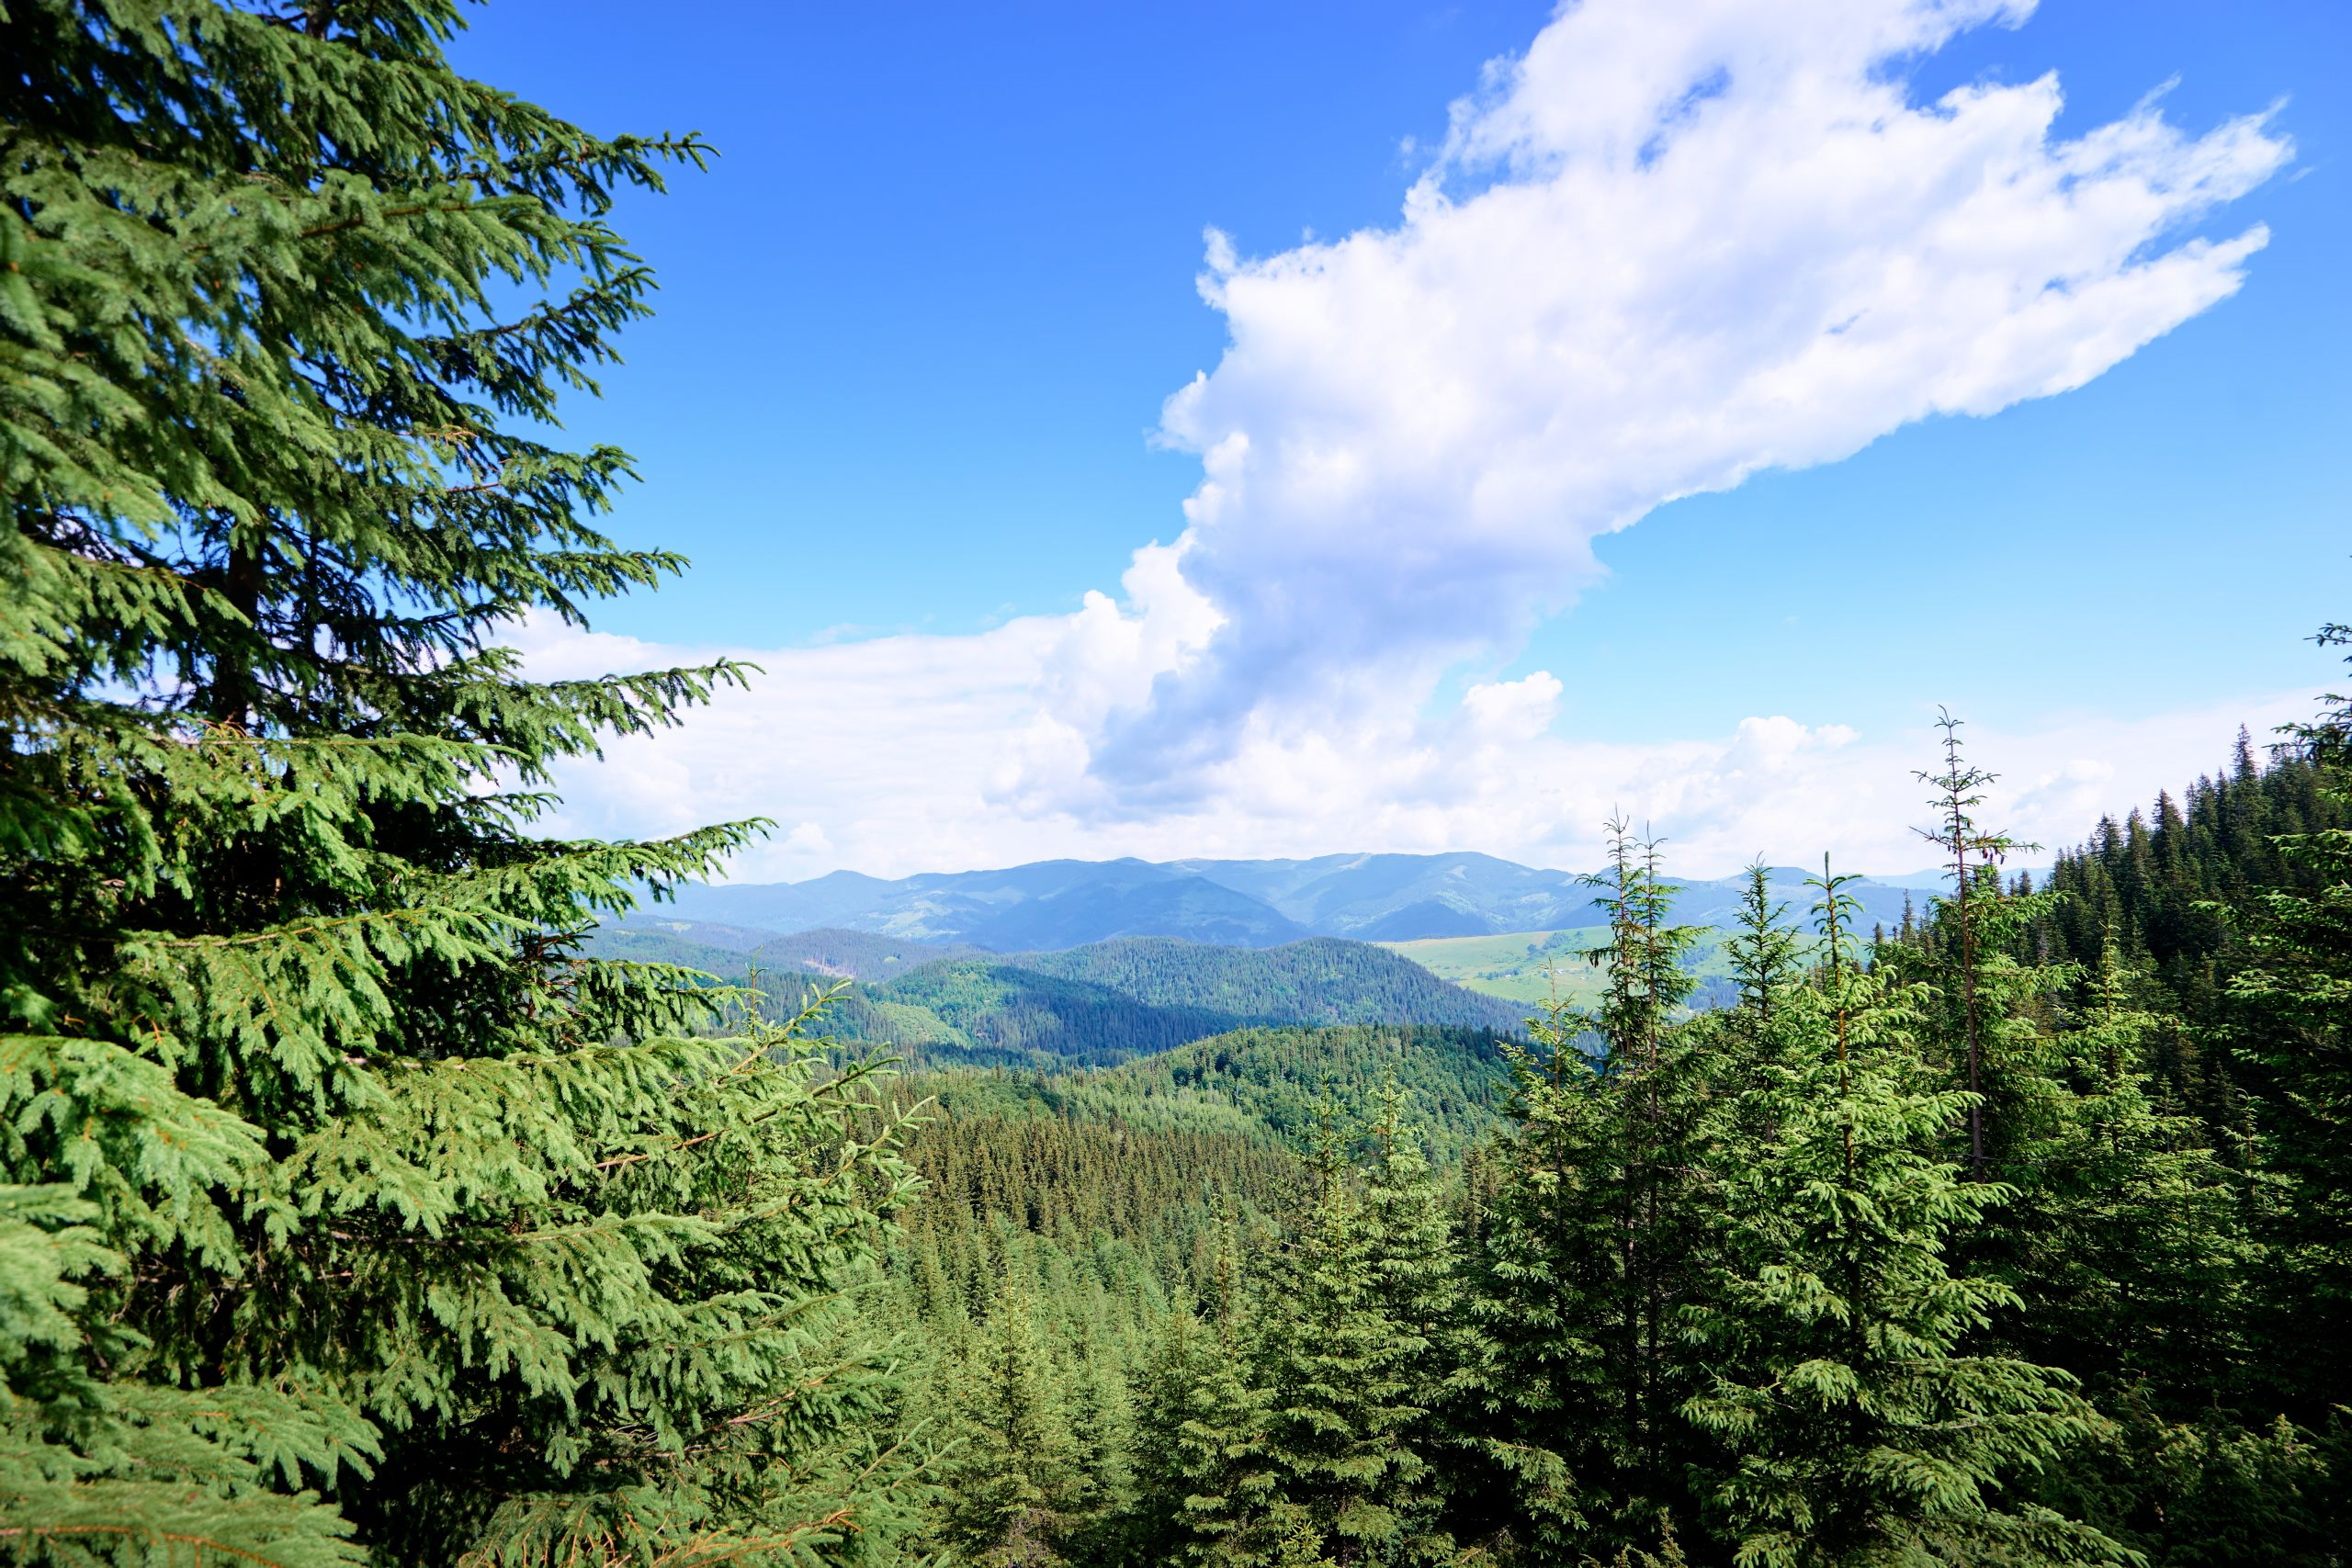 Carpathian mountain forests, Ukraine © Shutterstock